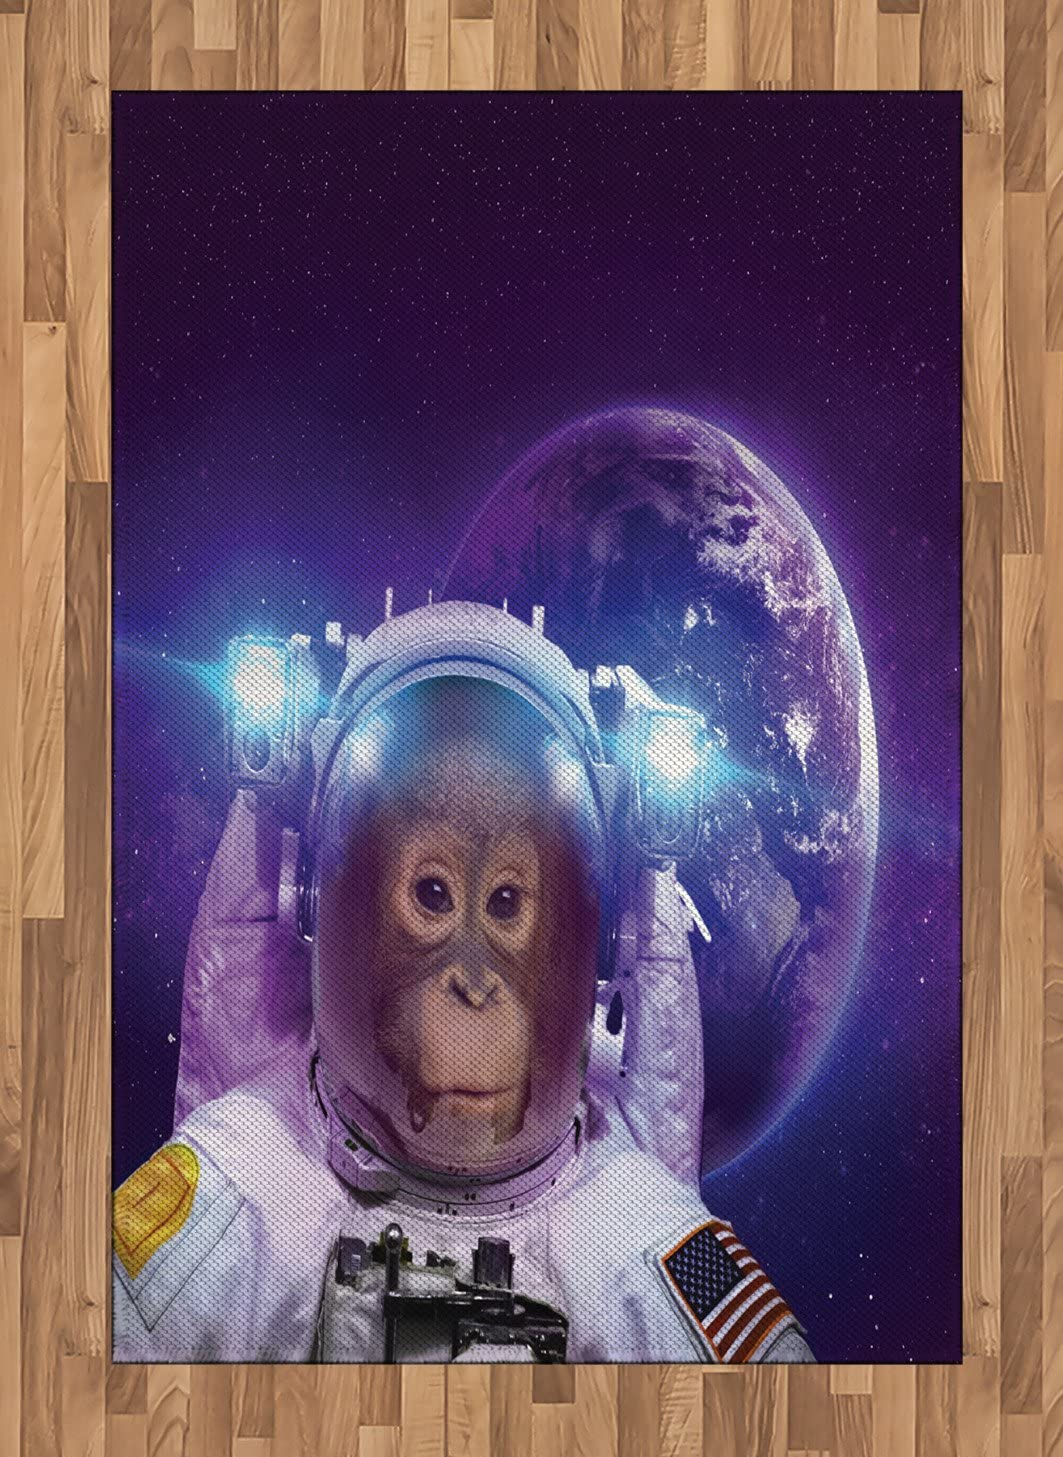 Ambesonne Space Area Rug, Astronaut Monkey on Outer Space with Planet Earth Background Humor Image Print, Flat Woven Accent Rug for Living Room Bedroom Dining Room, 4 X 5.7 FT, Violet White